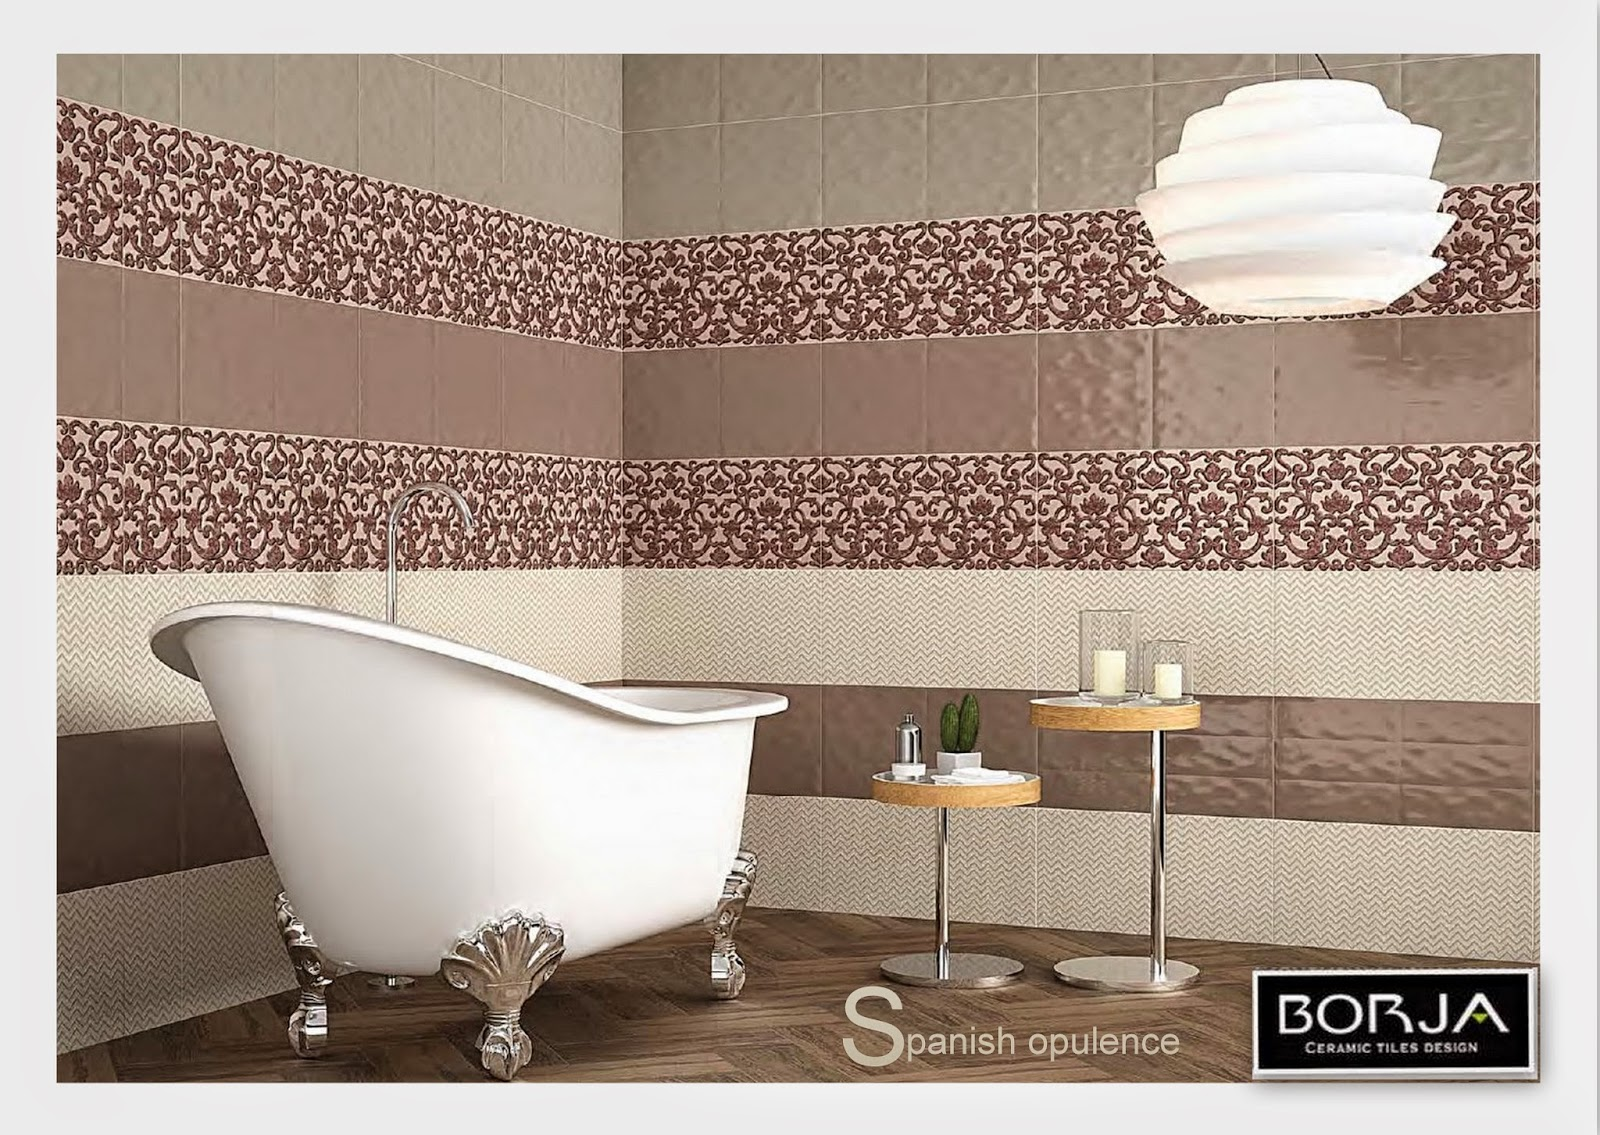 Borja ceramic tiles design bolton slate 30x60 winsdor white 30x60 dailygadgetfo Image collections